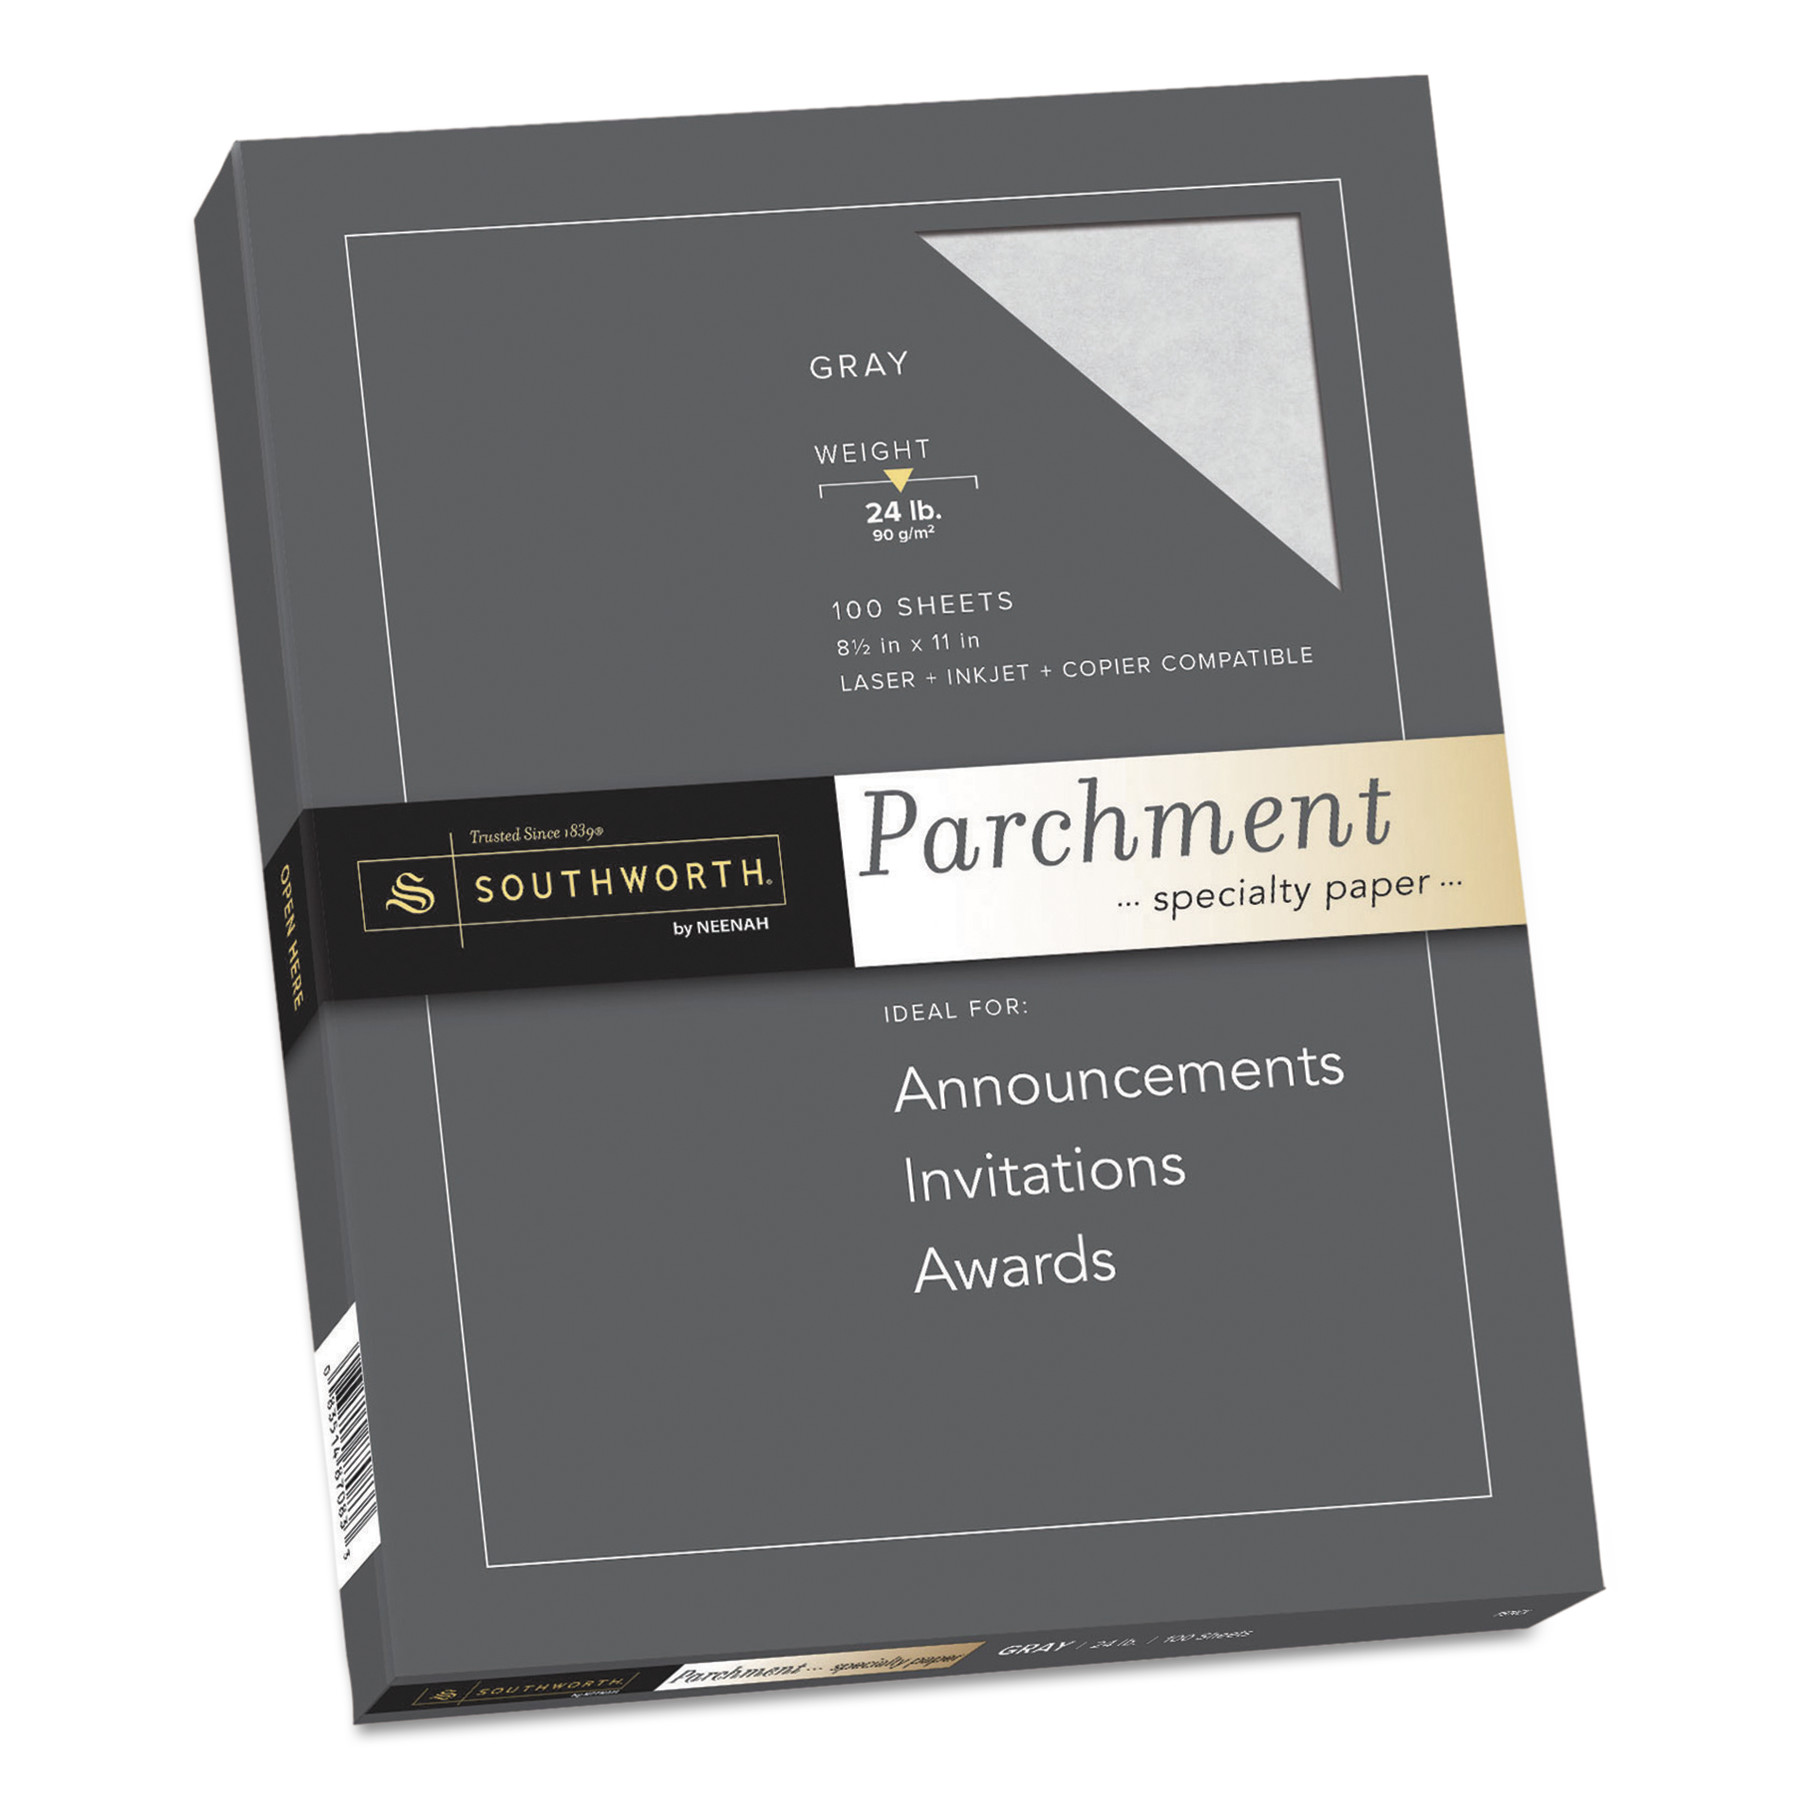 Southworth Parchment Specialty Paper, 24lb, 8 1/2 X 11, Gray,